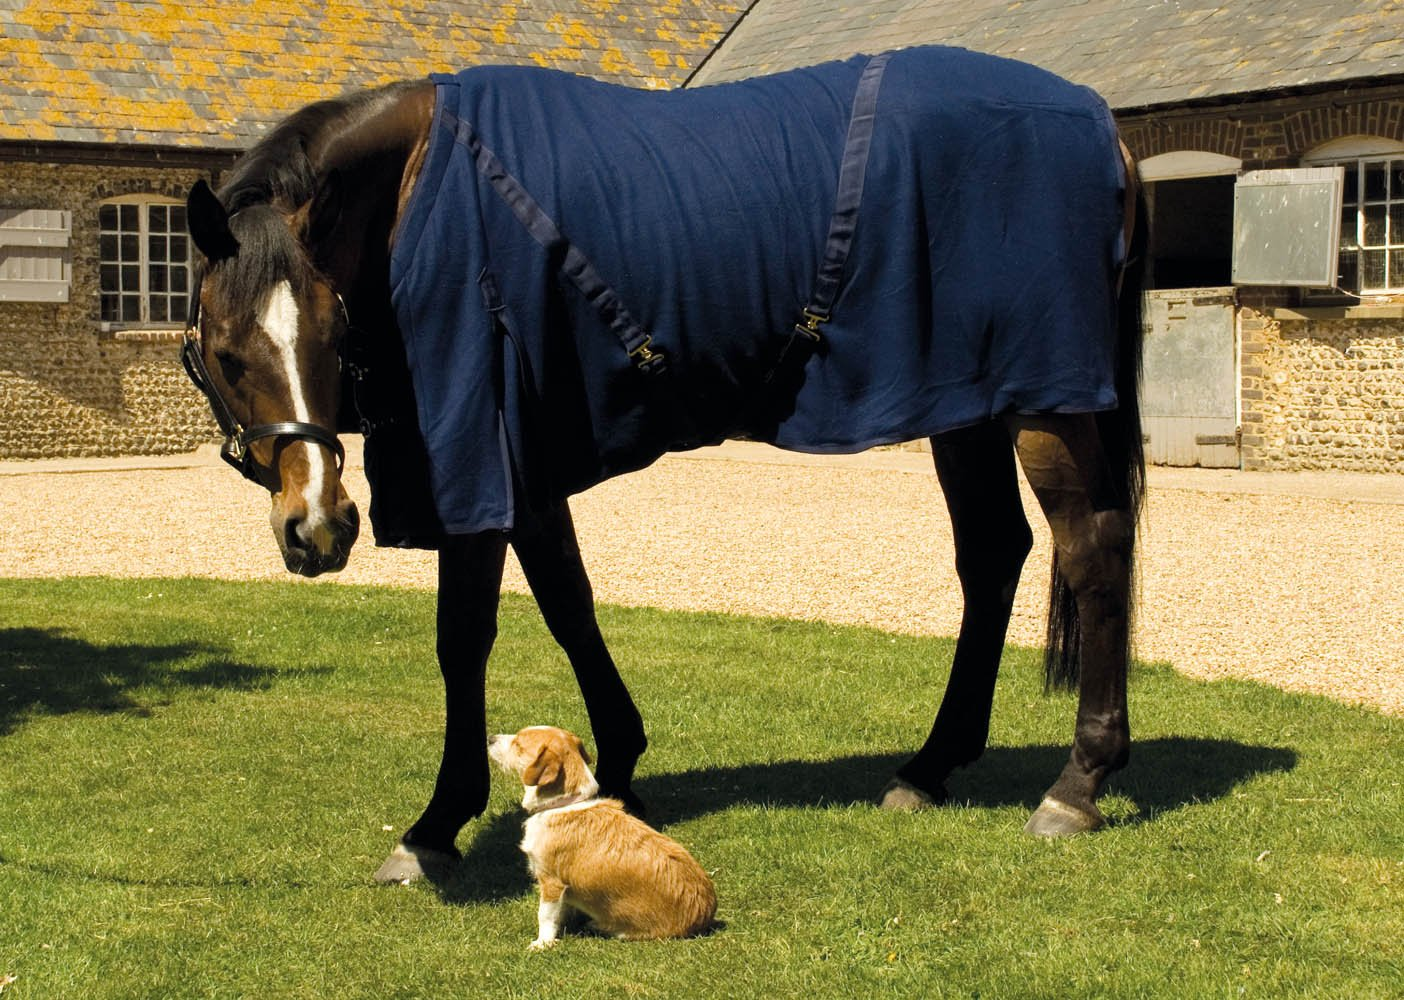 Harlequin fleece rug - £36.50 including 1 logo embroideryAvailable in Navy onlyAvailable in sizes 5'0 up to 7'0